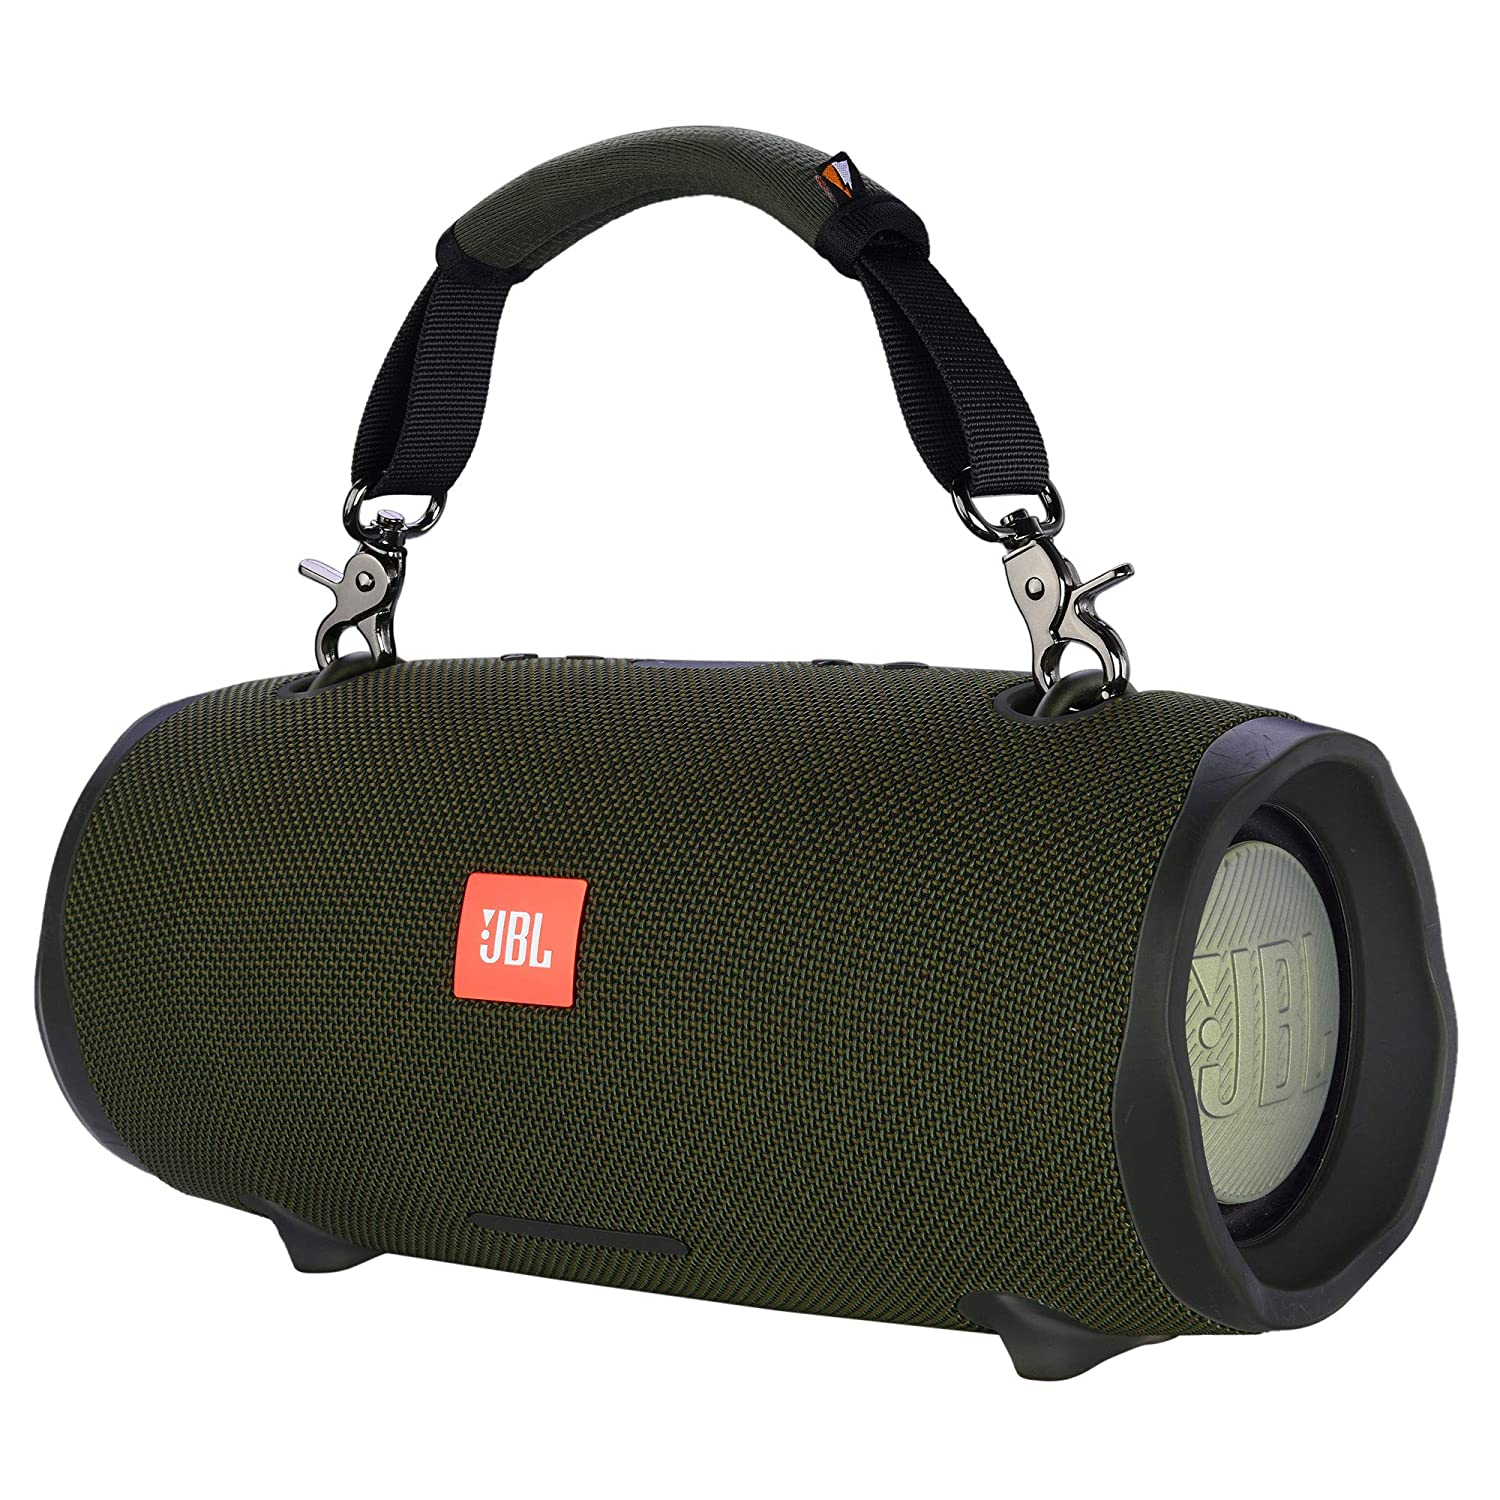 JBL Xtreme 2 Green Bluetooth Speaker with Portable Hard Case